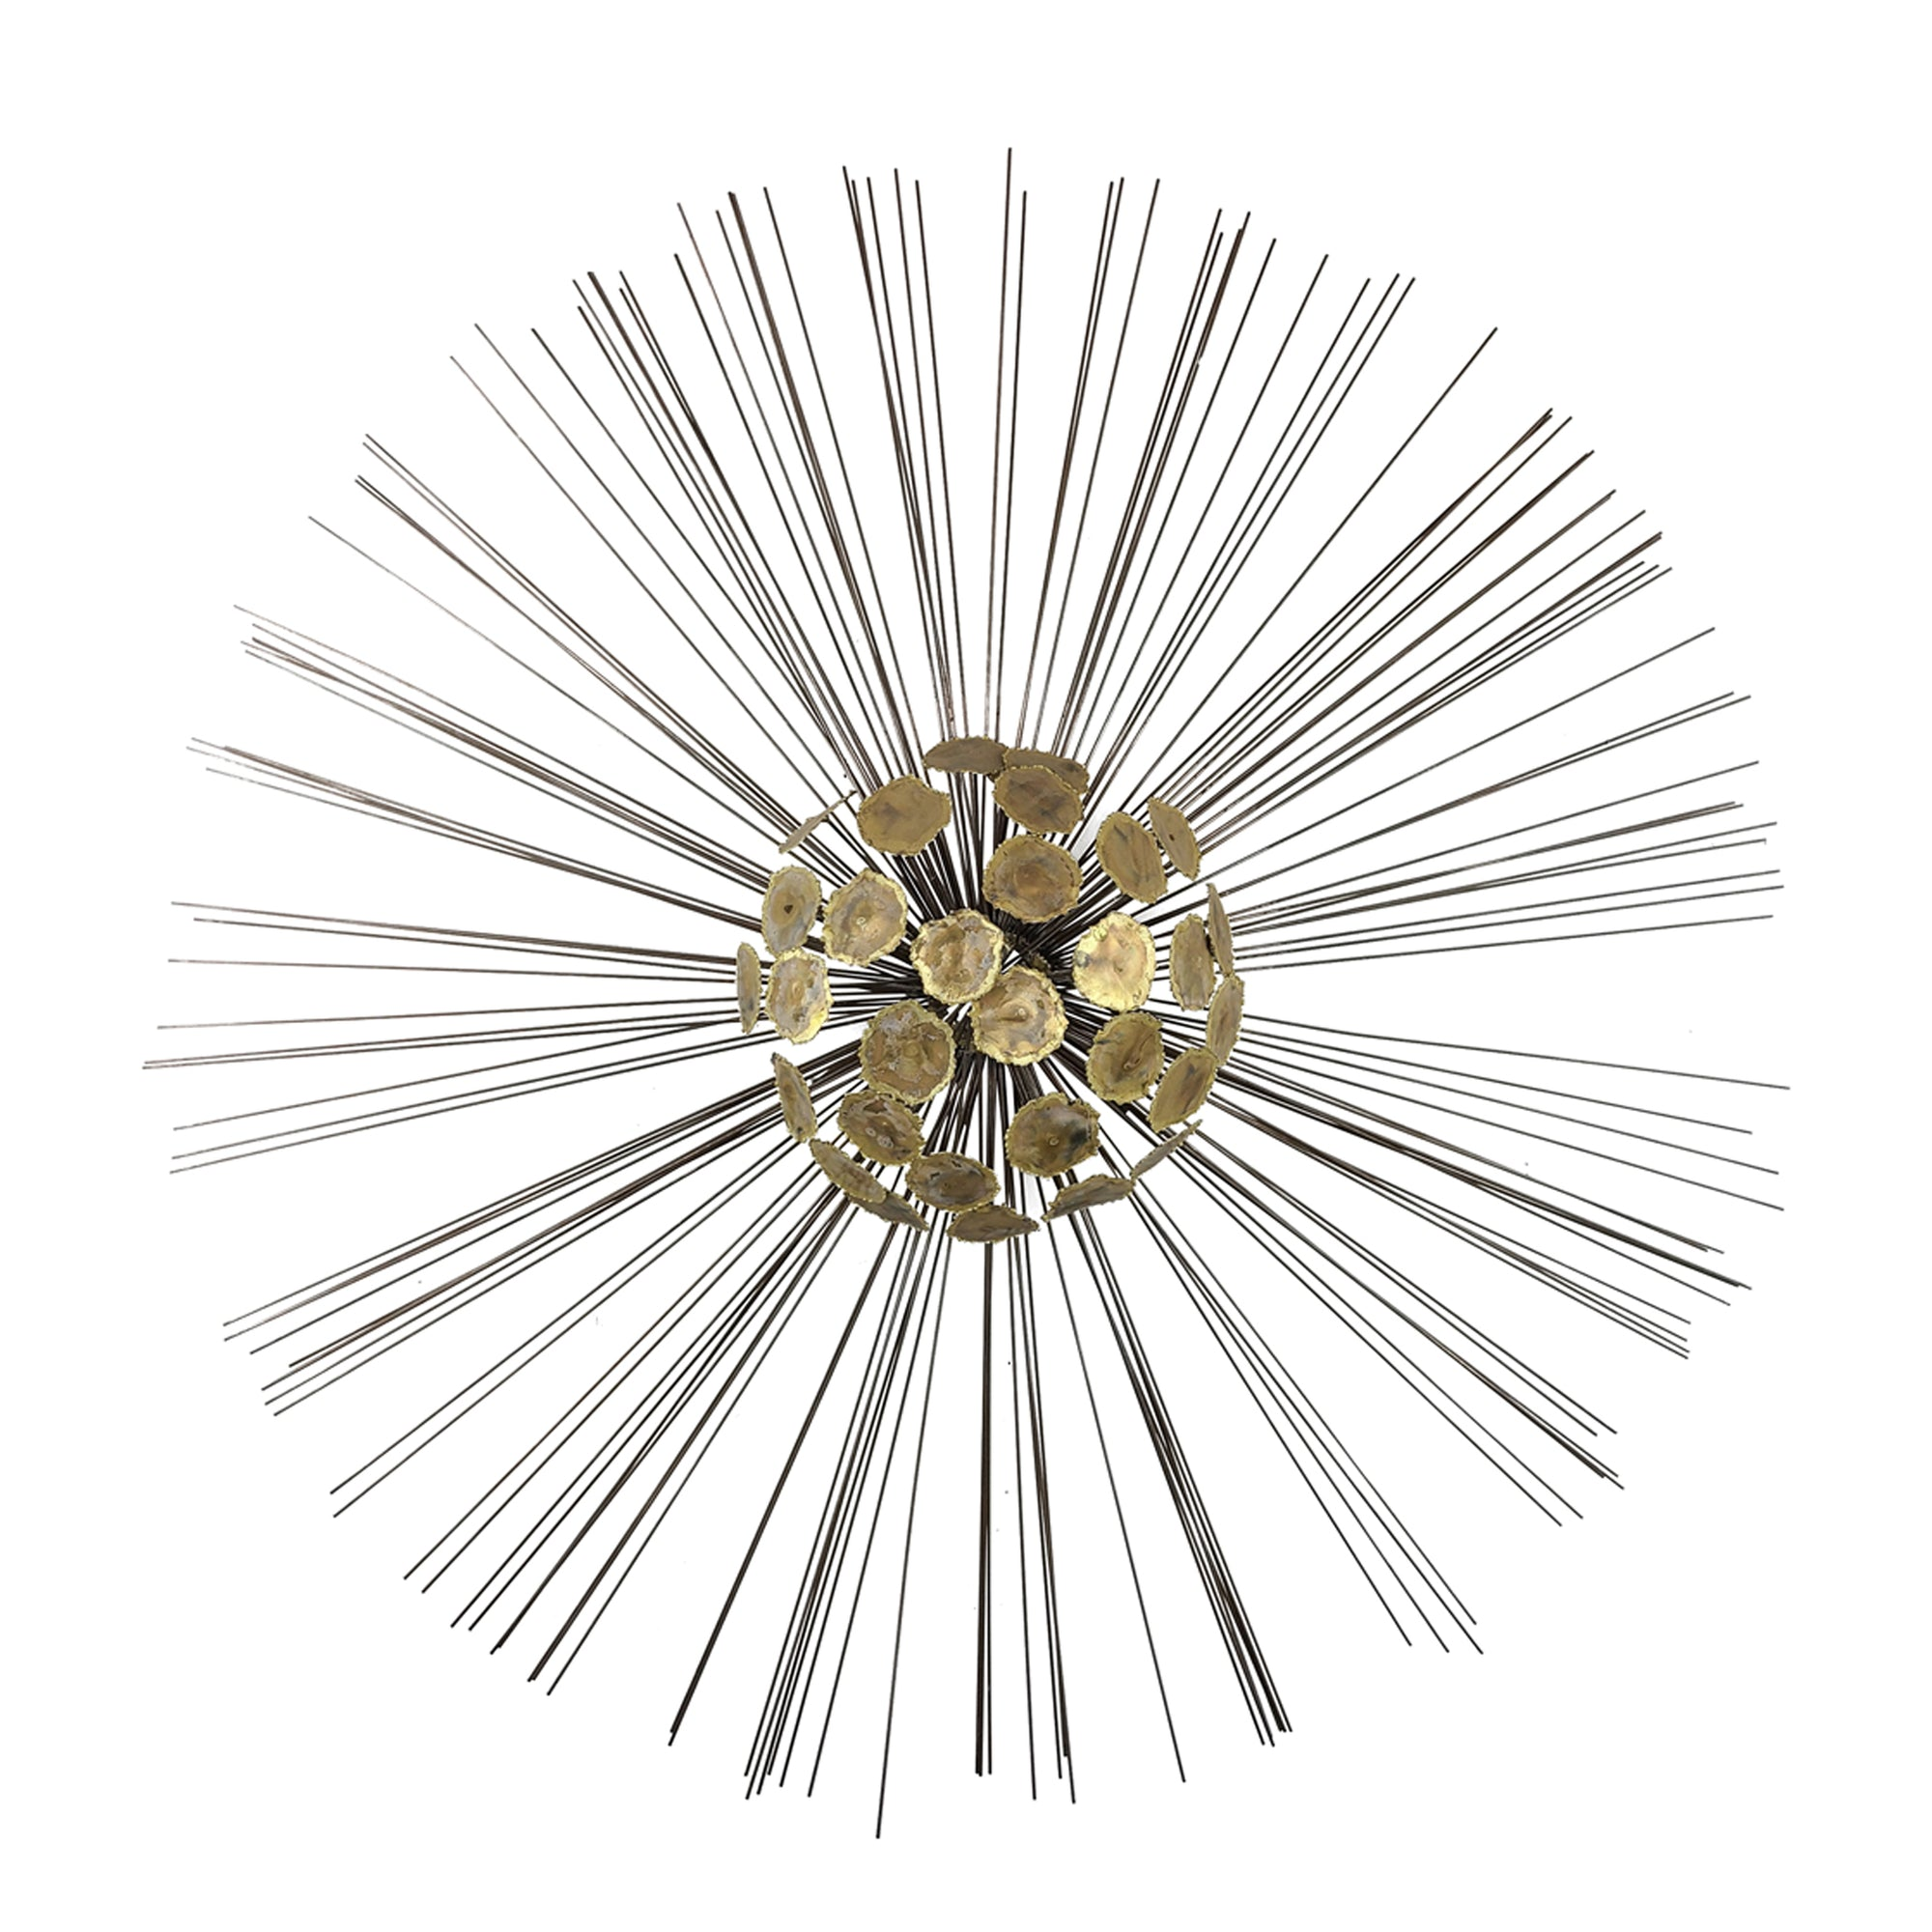 Brass Sunburst Wall Sculpture Curtis Jere